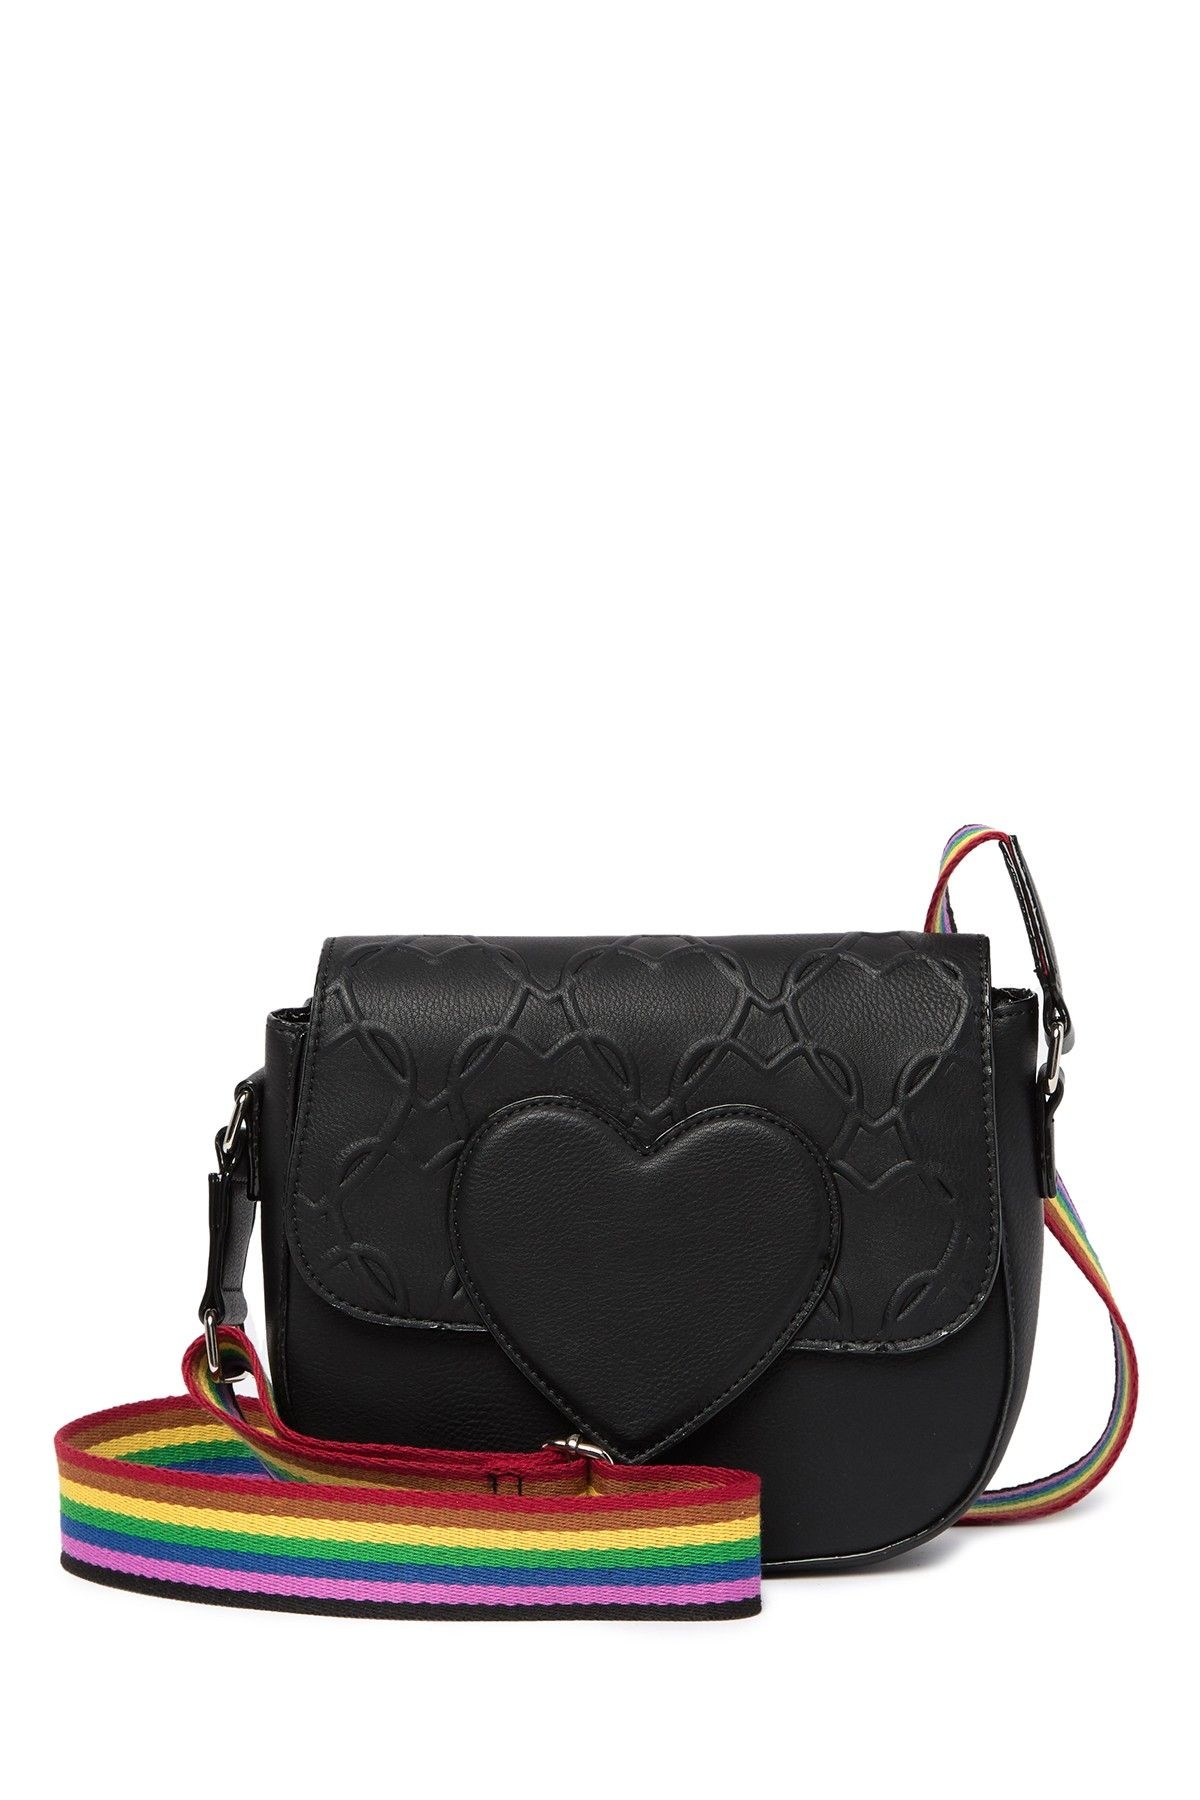 878ef098455f Betsey Johnson - Quilted Heart Crossbody Bag is now 60% off. Free Shipping  on orders over $100.